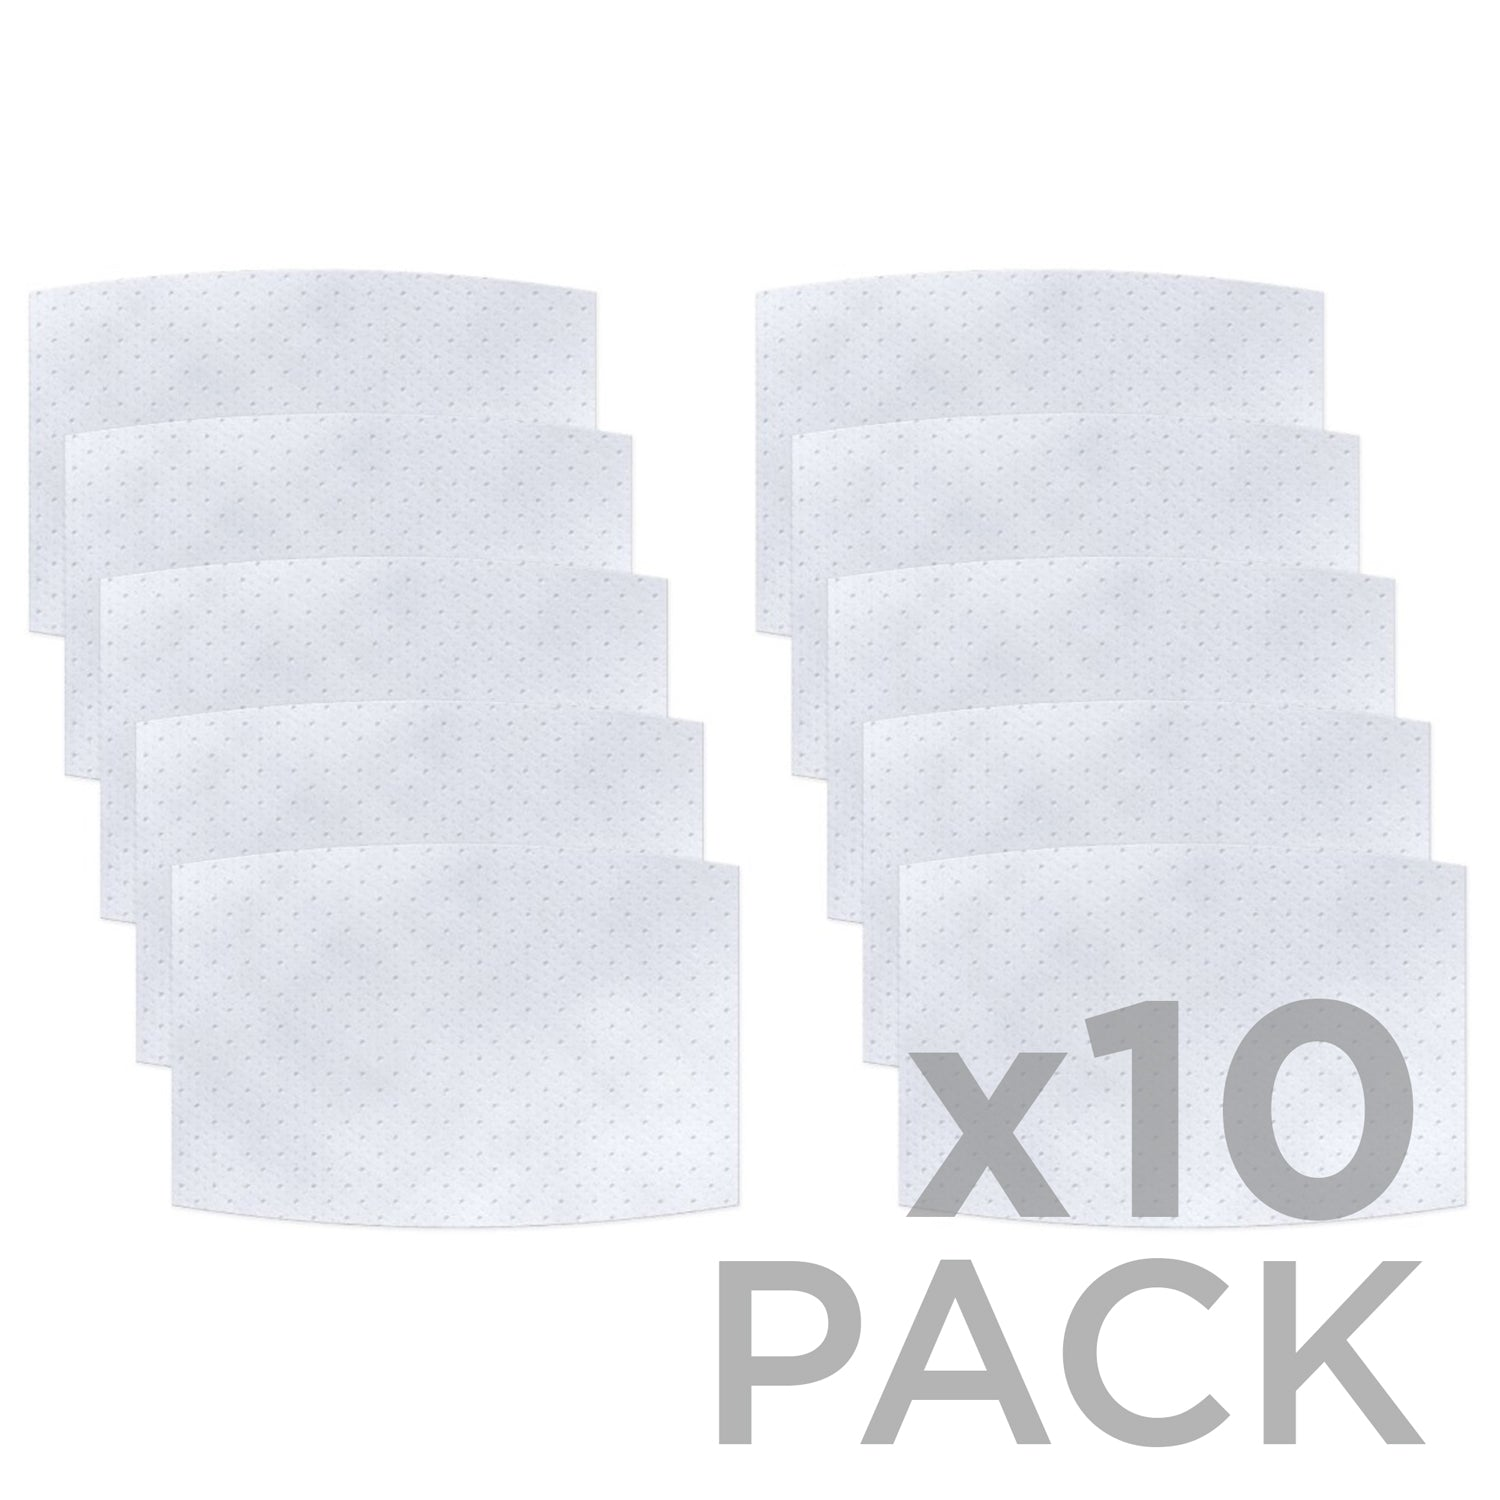 Non-Woven Polypropylene 3-layer Filter 10-Pack ($1.40ea) - Protect Styles